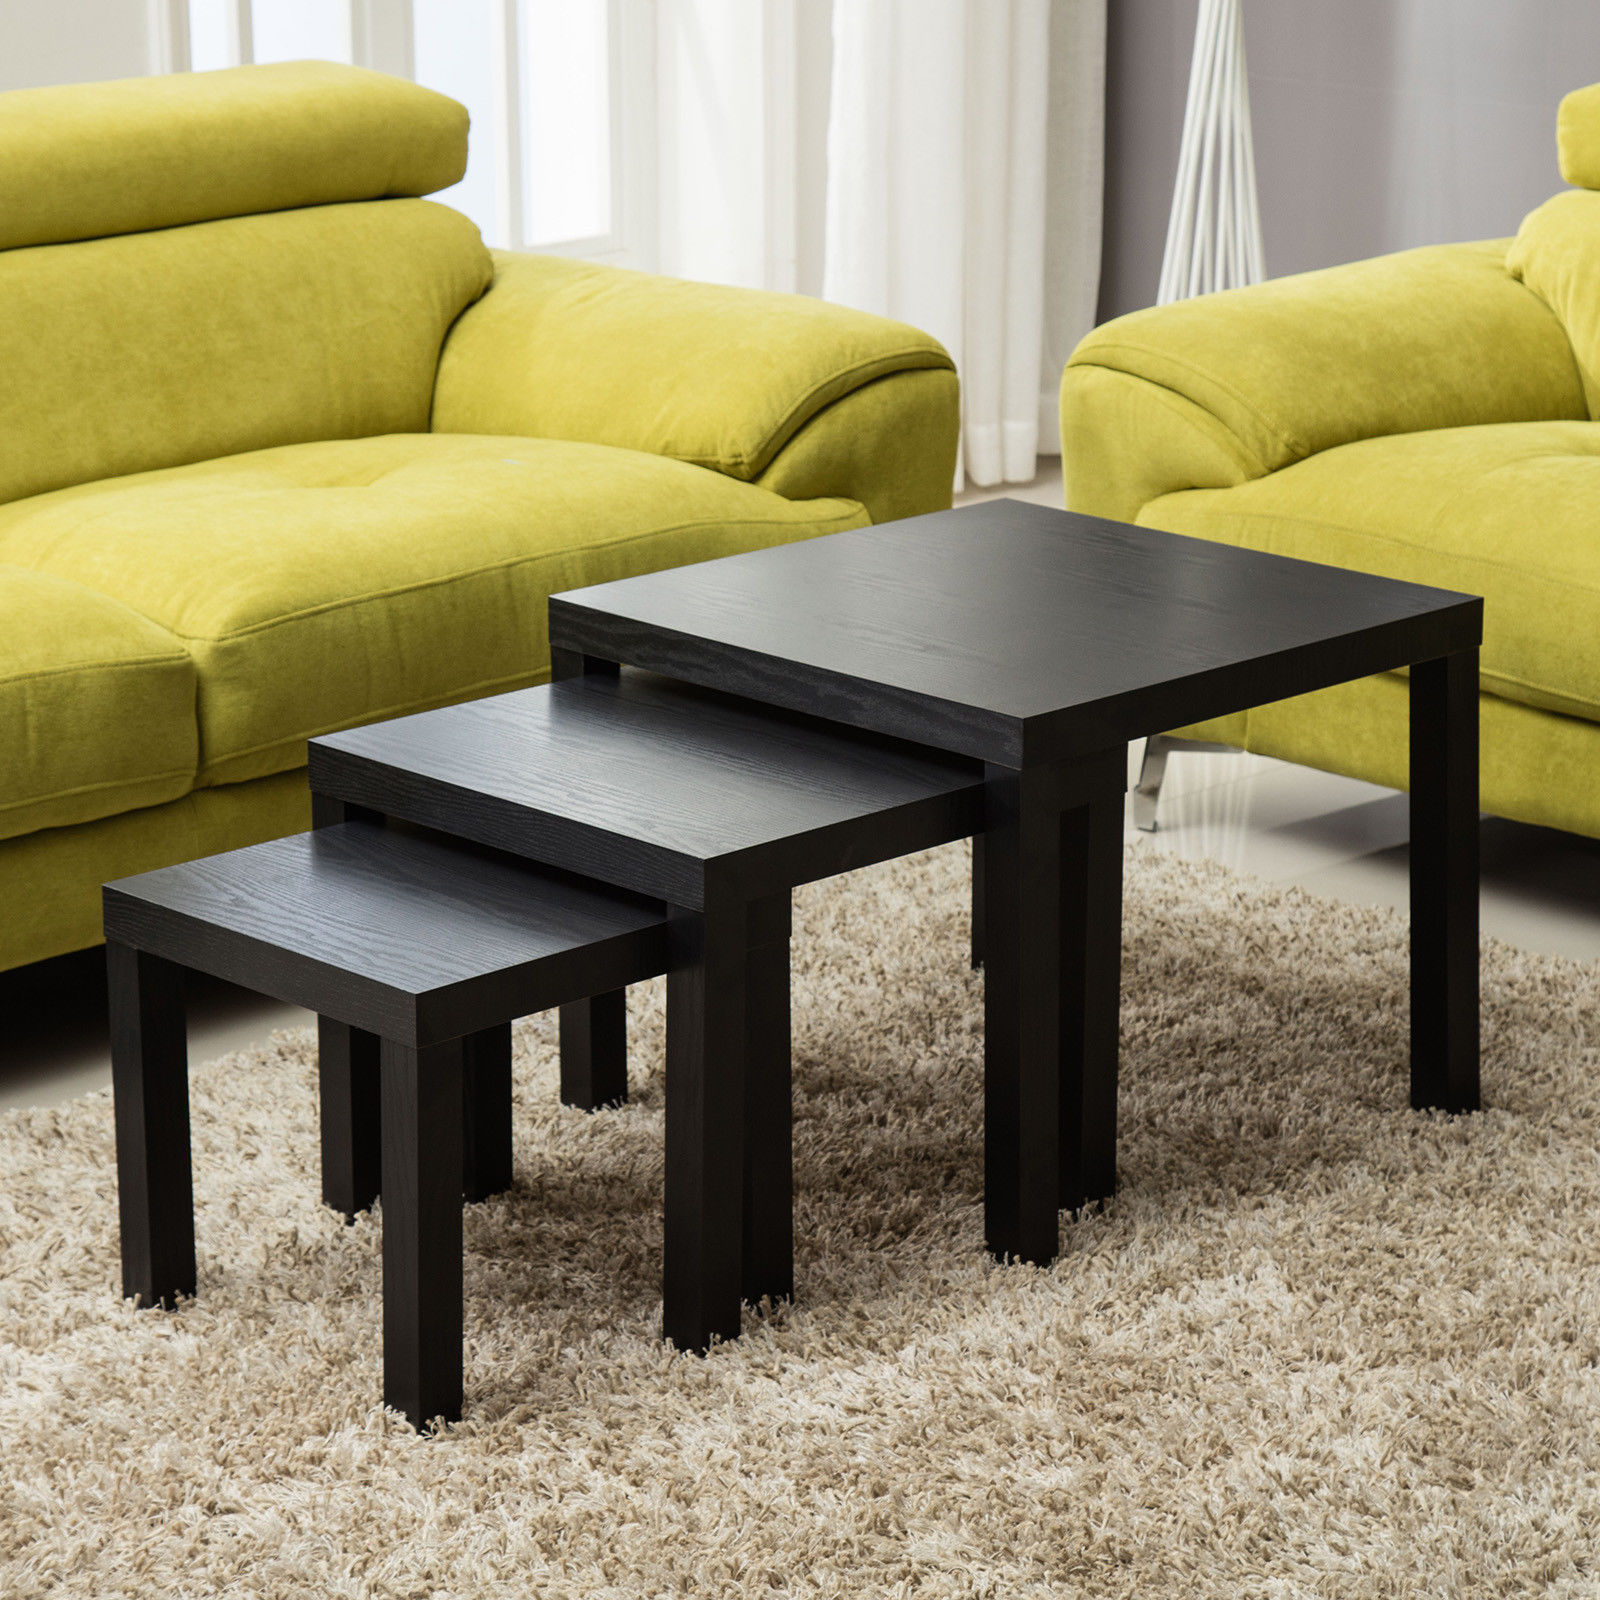 Modern Nest of 3 Tables Side End Coffee Table Living Room Furniture ...